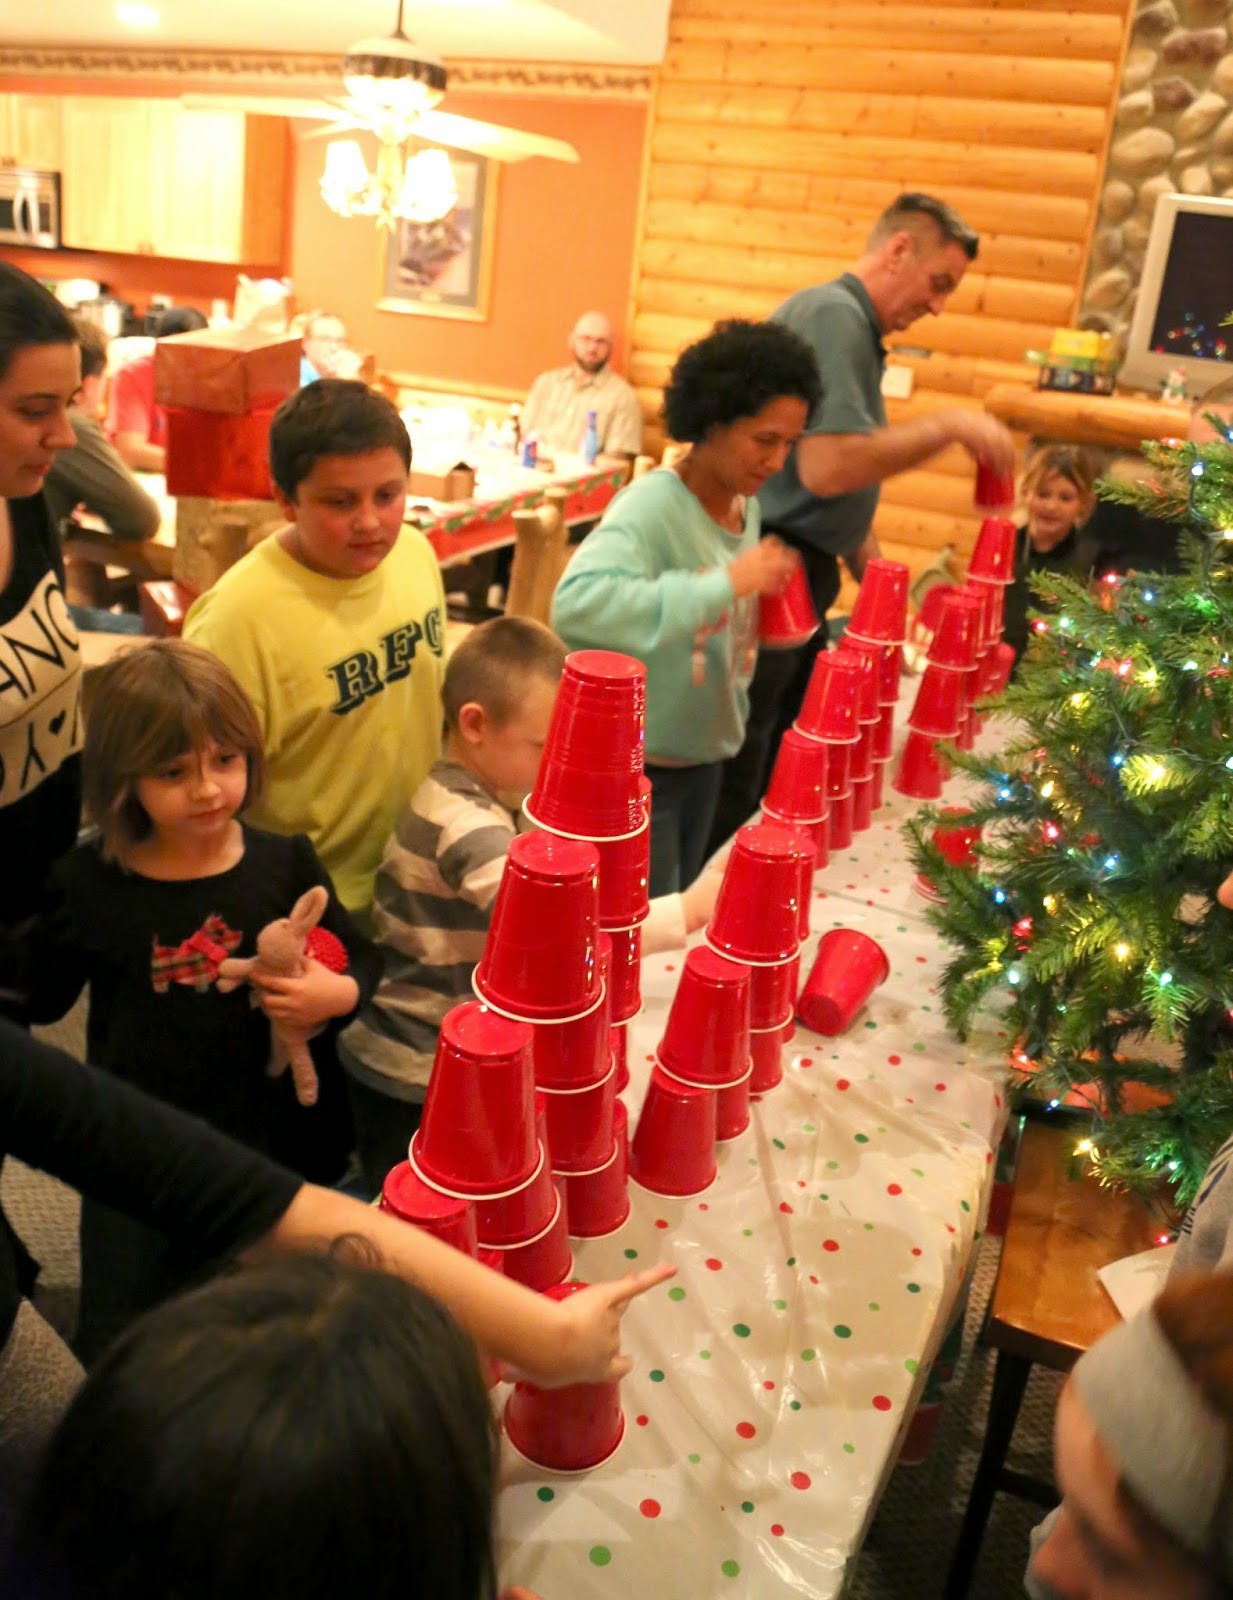 Family Holiday Party Ideas  Notable Nest Fun Family Christmas Party Games to Try